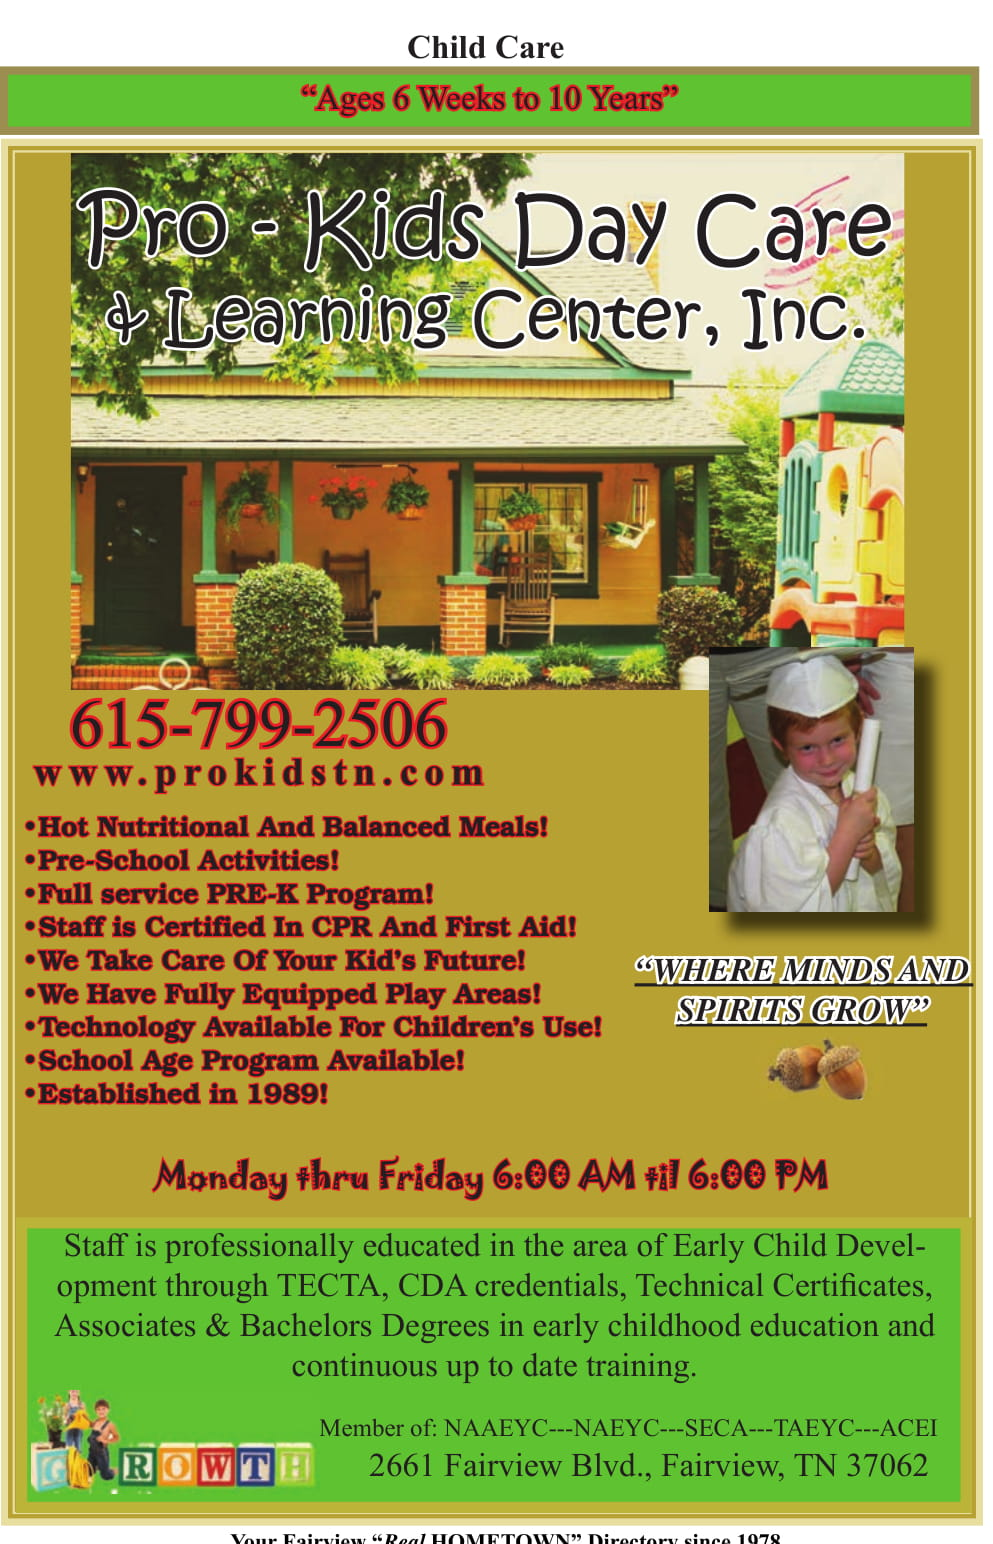 Pro-Kids Day Care & Learning Center, Inc.